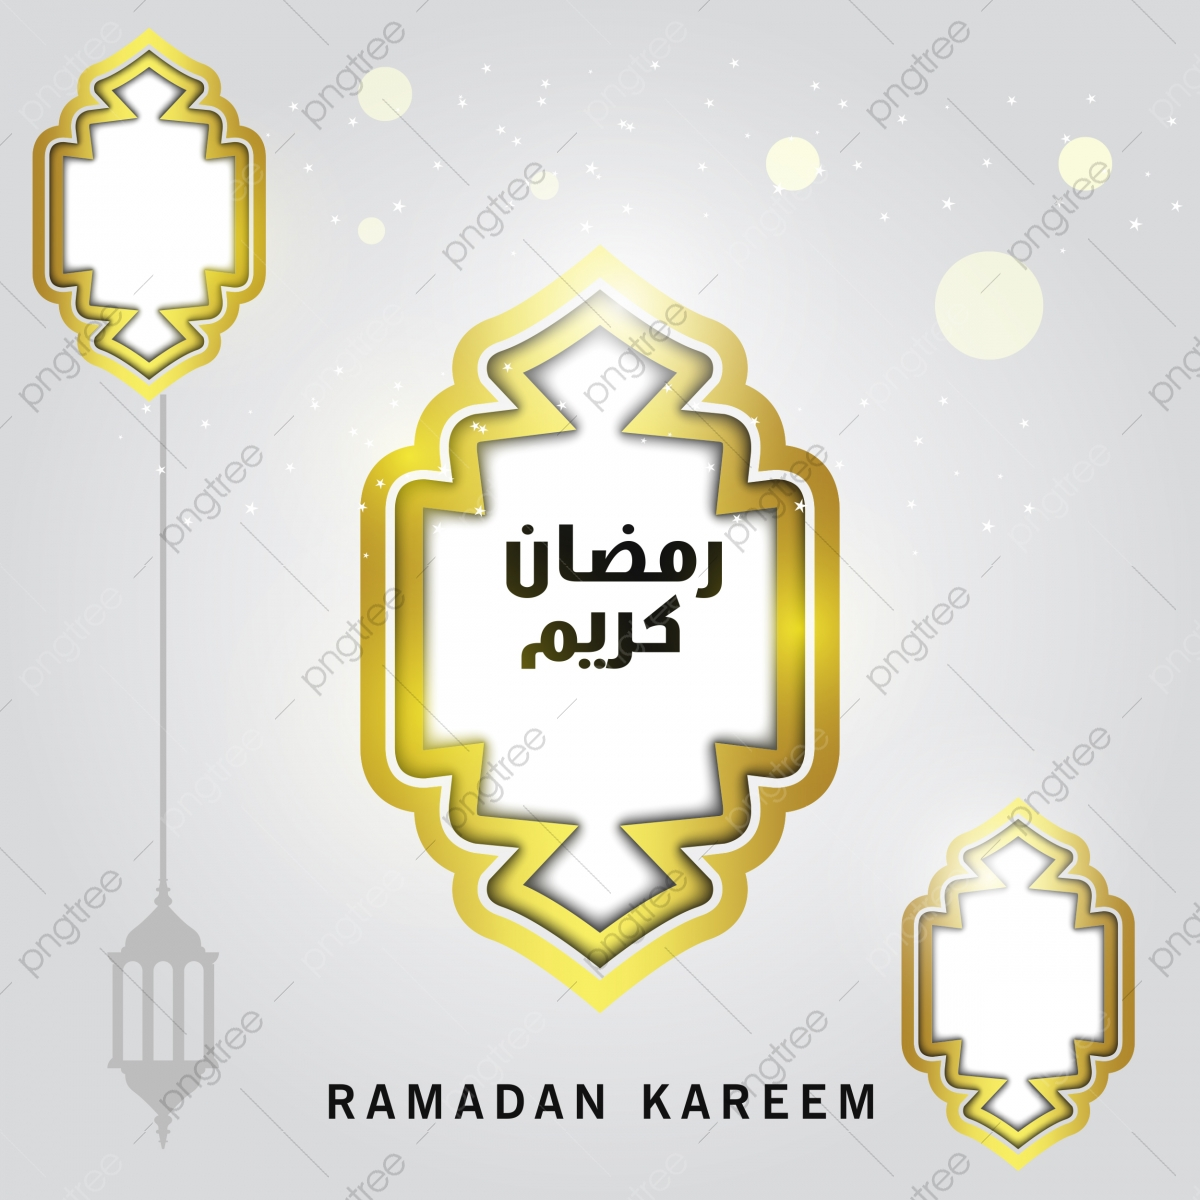 ramadan kareem mubarak greeting with islamic shape ramadan ramadan kareem ramadan mubarak png and vector with transparent background for free download https pngtree com freepng ramadan kareem mubarak greeting with islamic shape 5342267 html